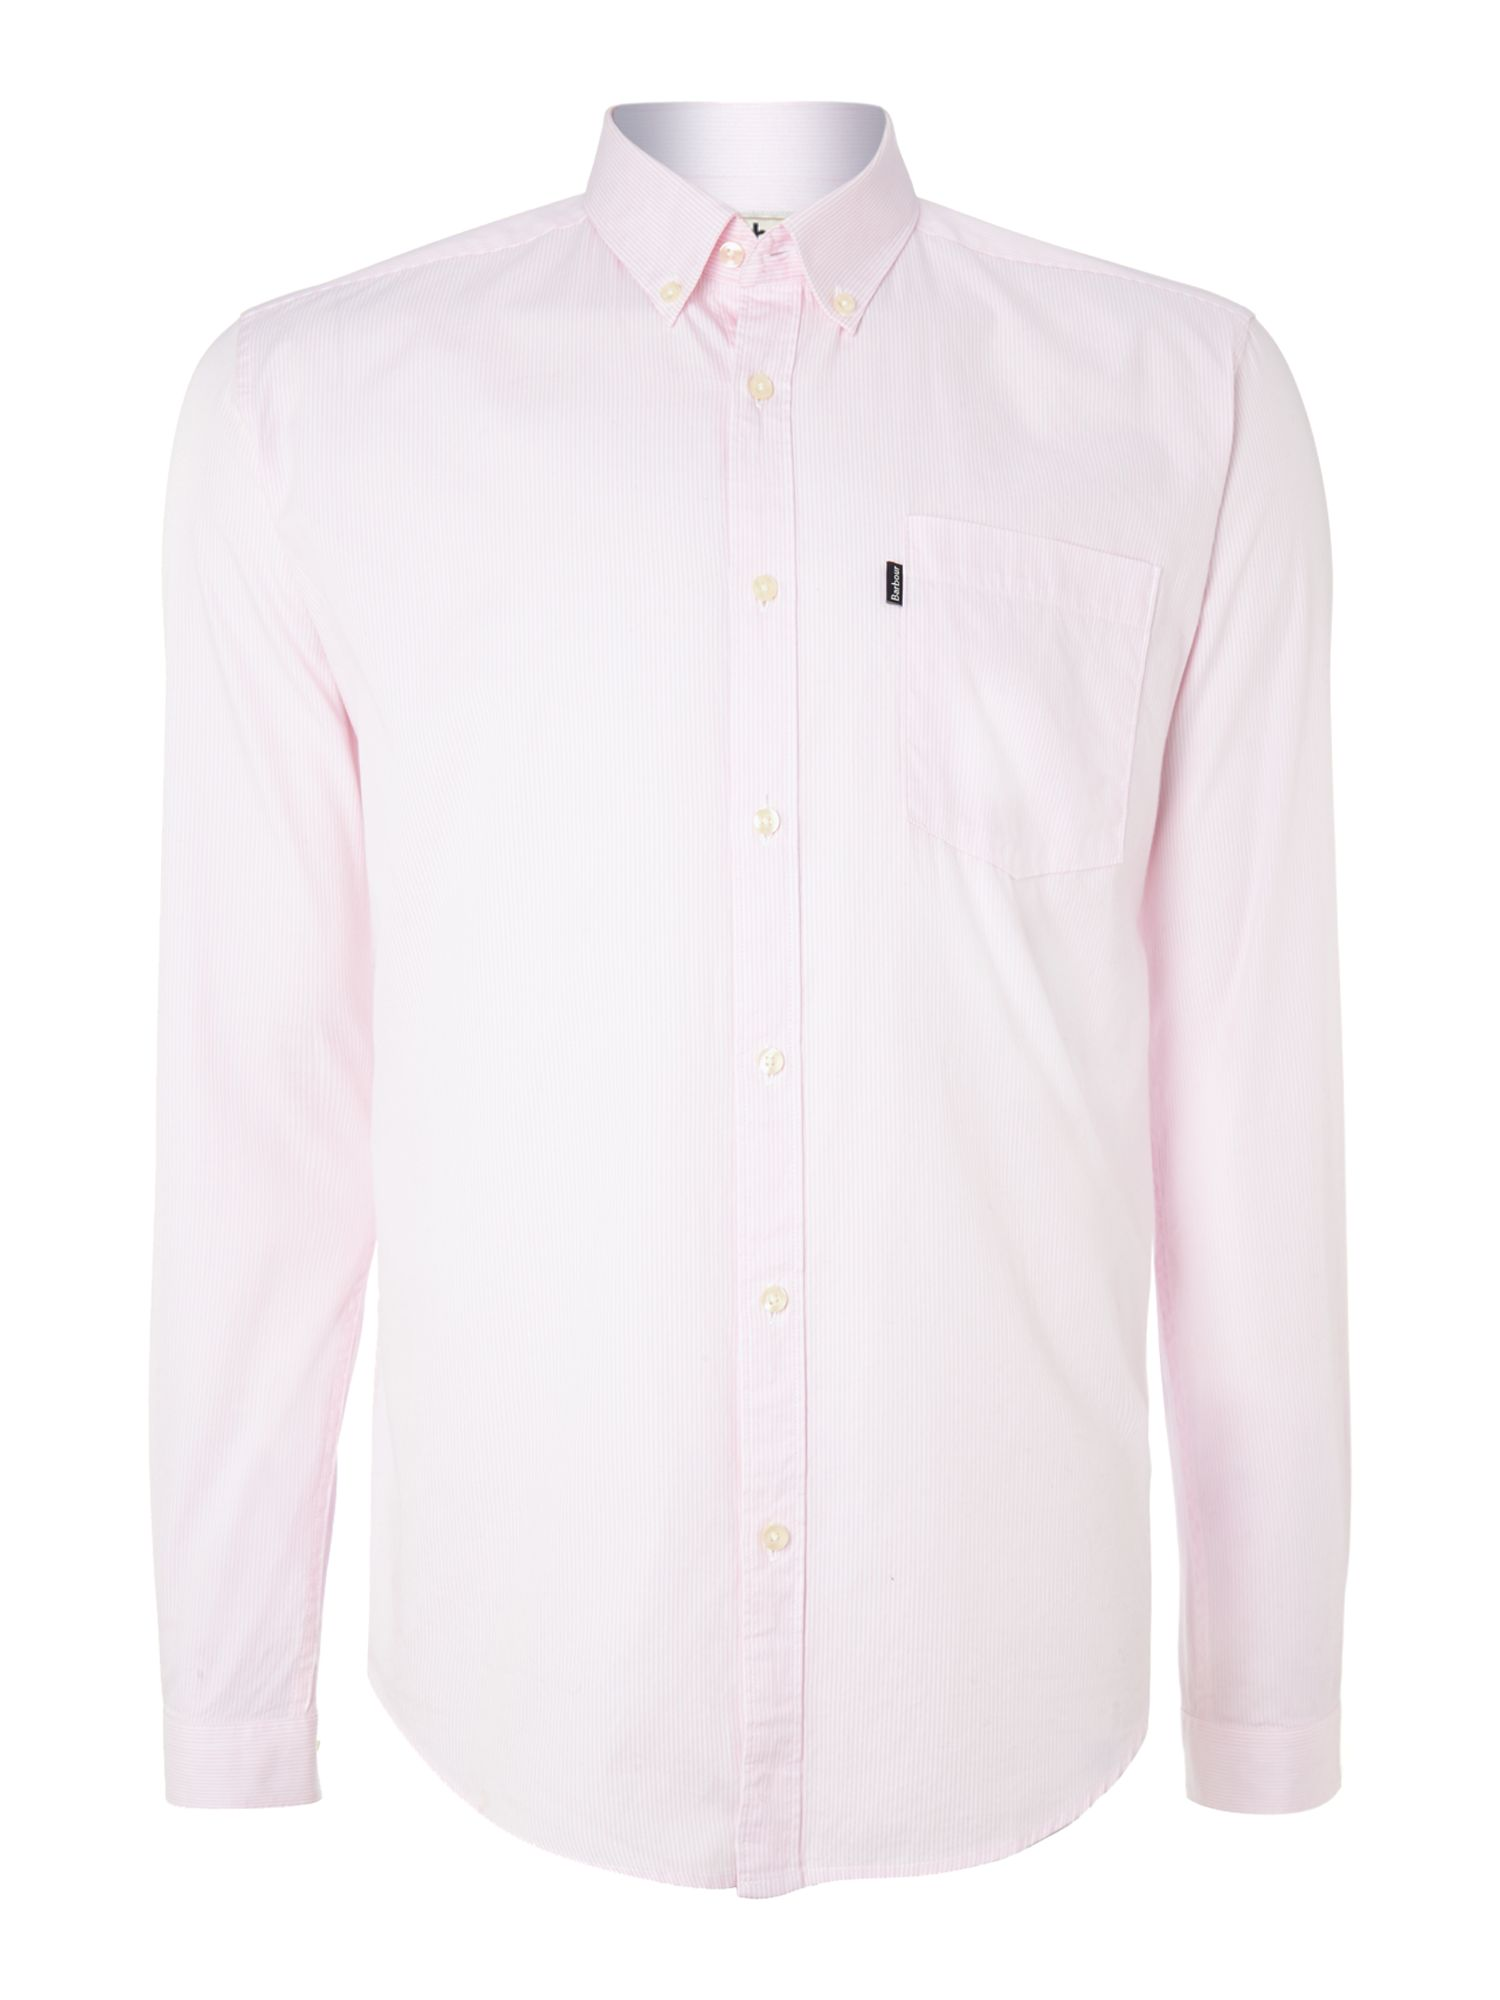 Rathburn fine stripe long sleeve shirt